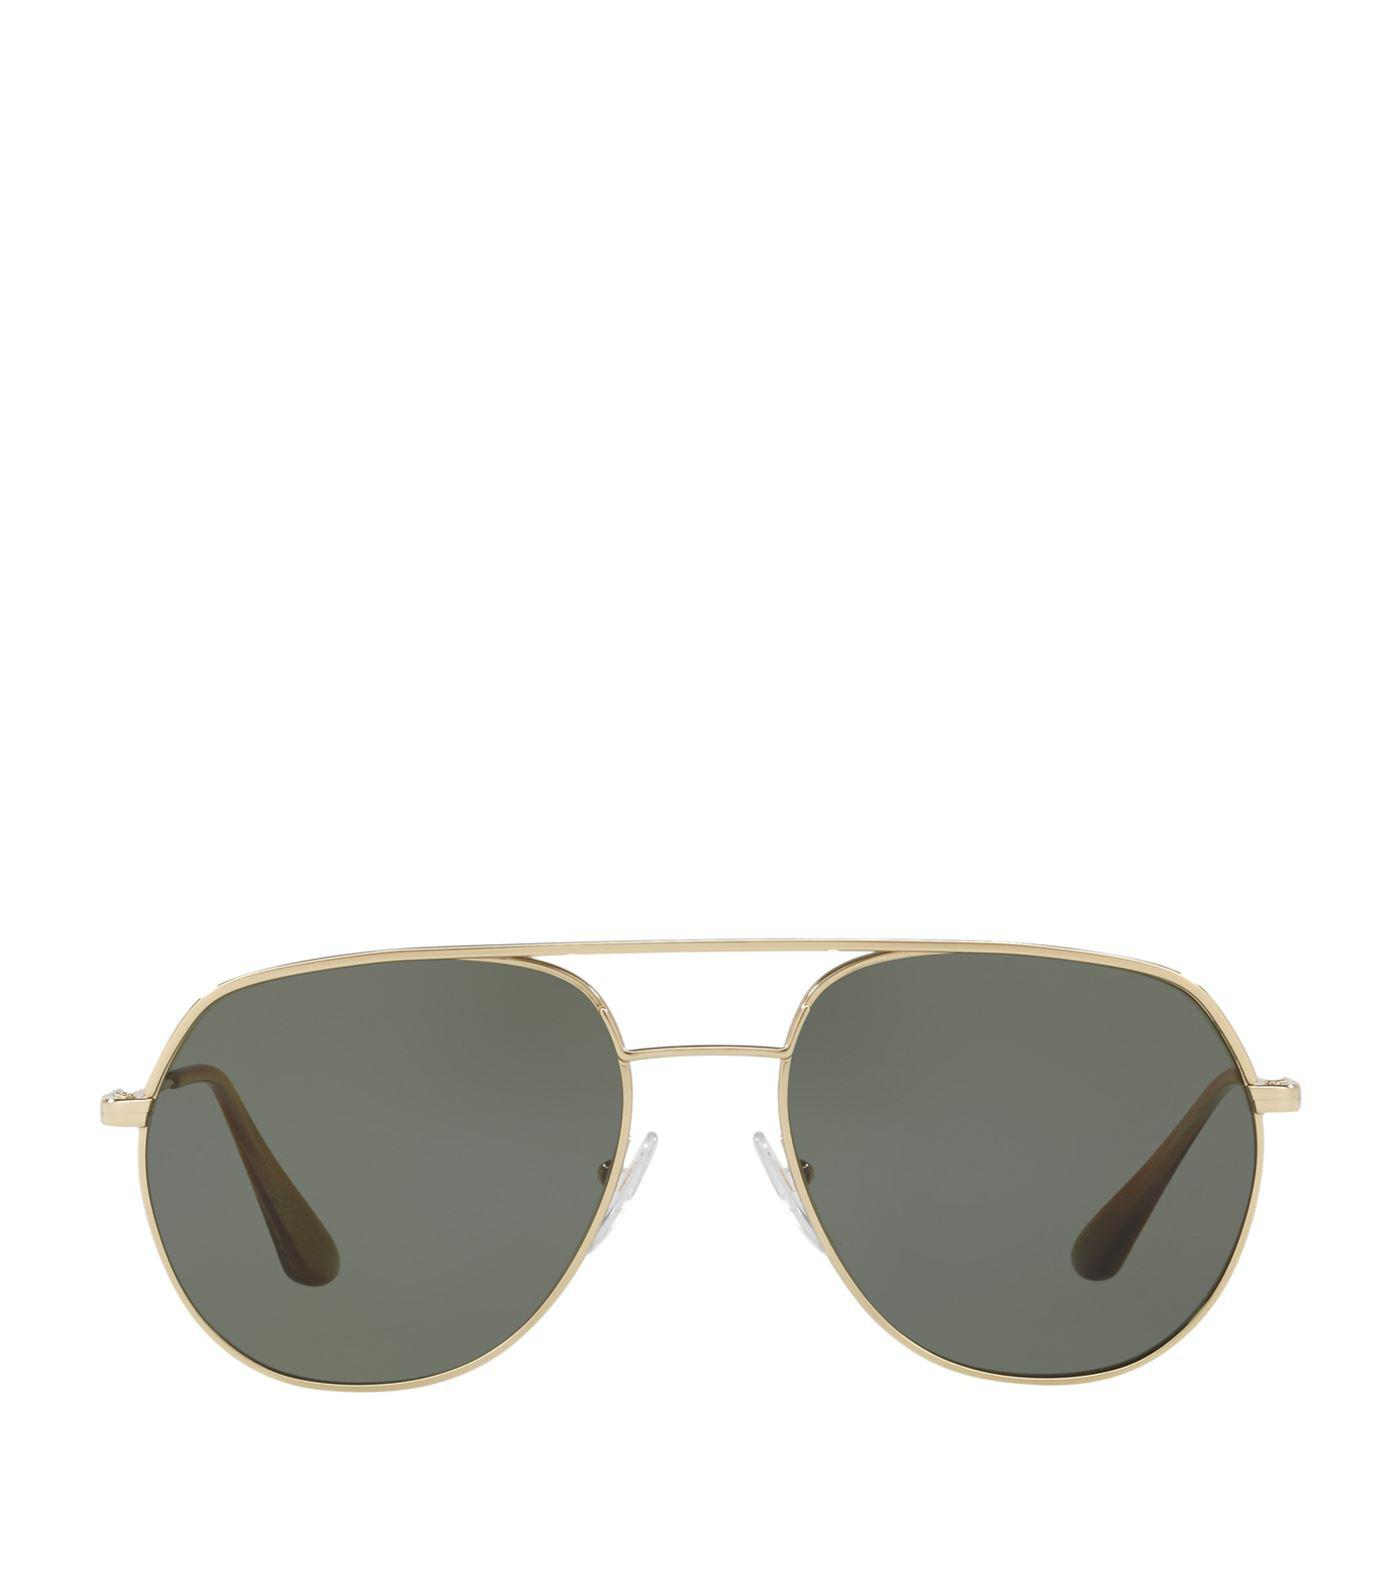 83741ff4b92 Prada Irregular Sunglasses in Green for Men - Lyst